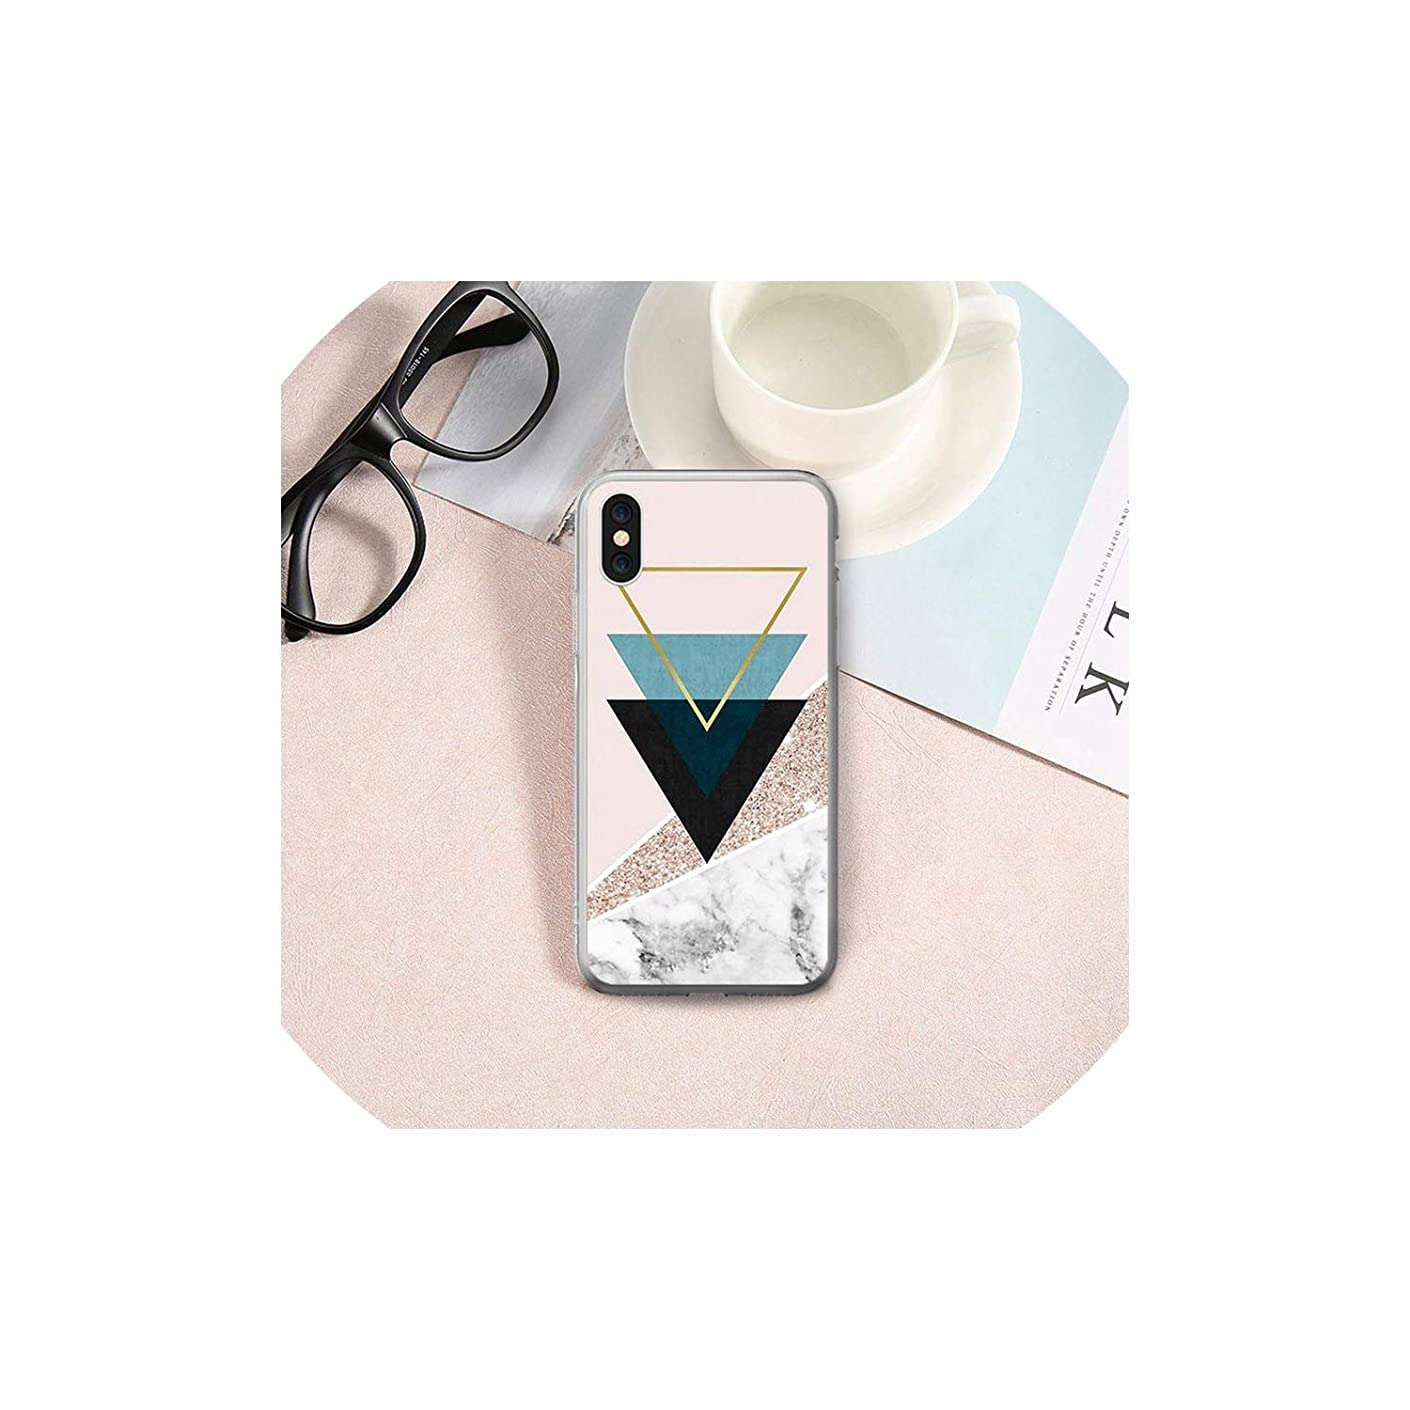 Stylish Geometric Marble Case for iPhone 7 6 6s 5 5s SE Cover Soft Silicone Case for iPhone X 6 S 7 8 Plus XR Coque Bag,5,for iPhone X